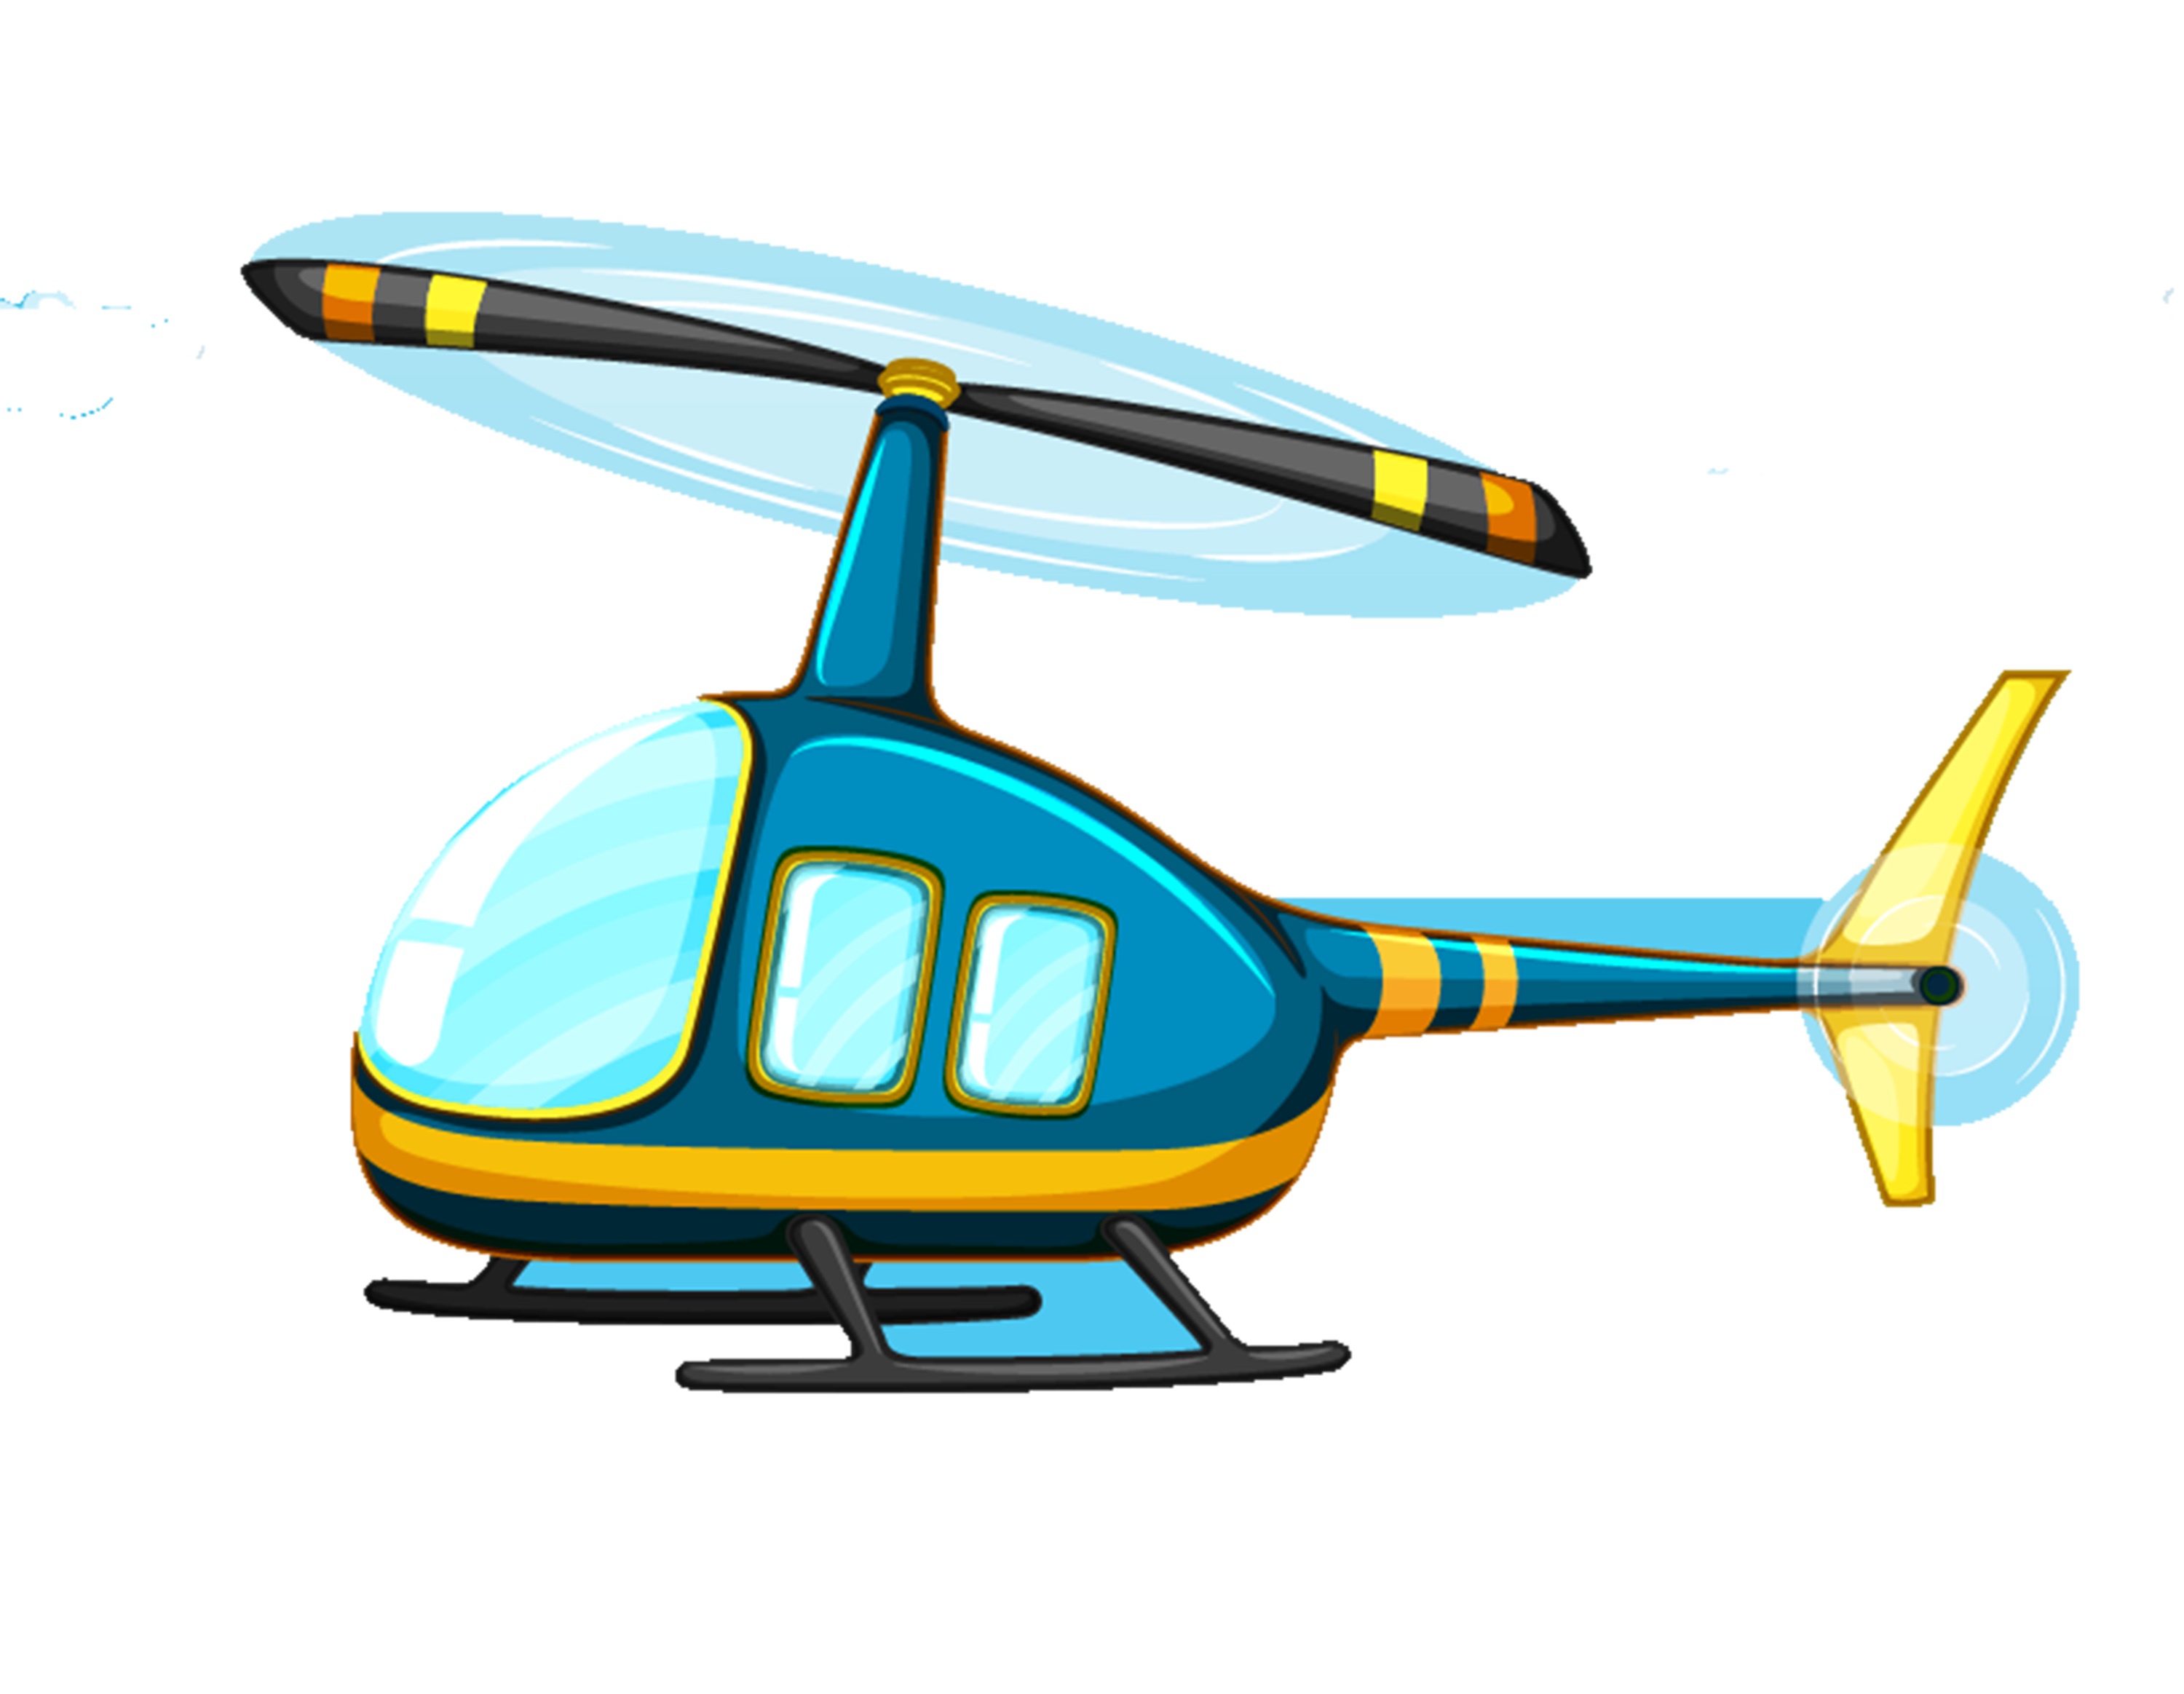 Yelloe helicopter clipart svg transparent download Helicopter clipart yellow helicopter, Helicopter yellow ... svg transparent download